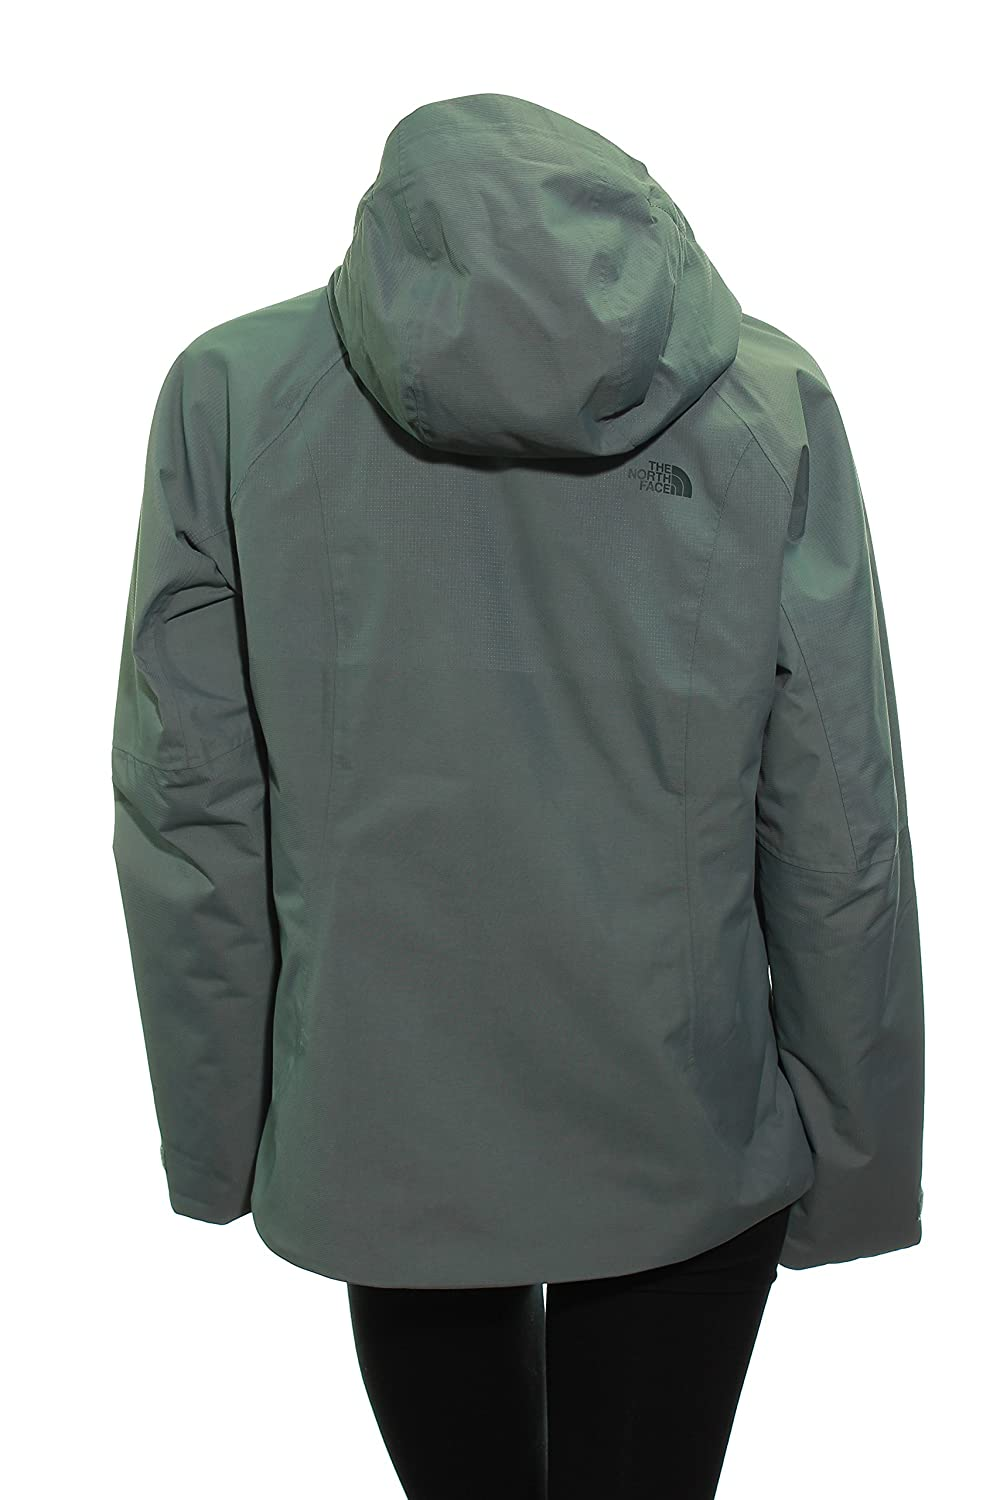 c6cfdac33 Amazon.com: Women's The North Face Fuse Montro Insulated Jacket ...